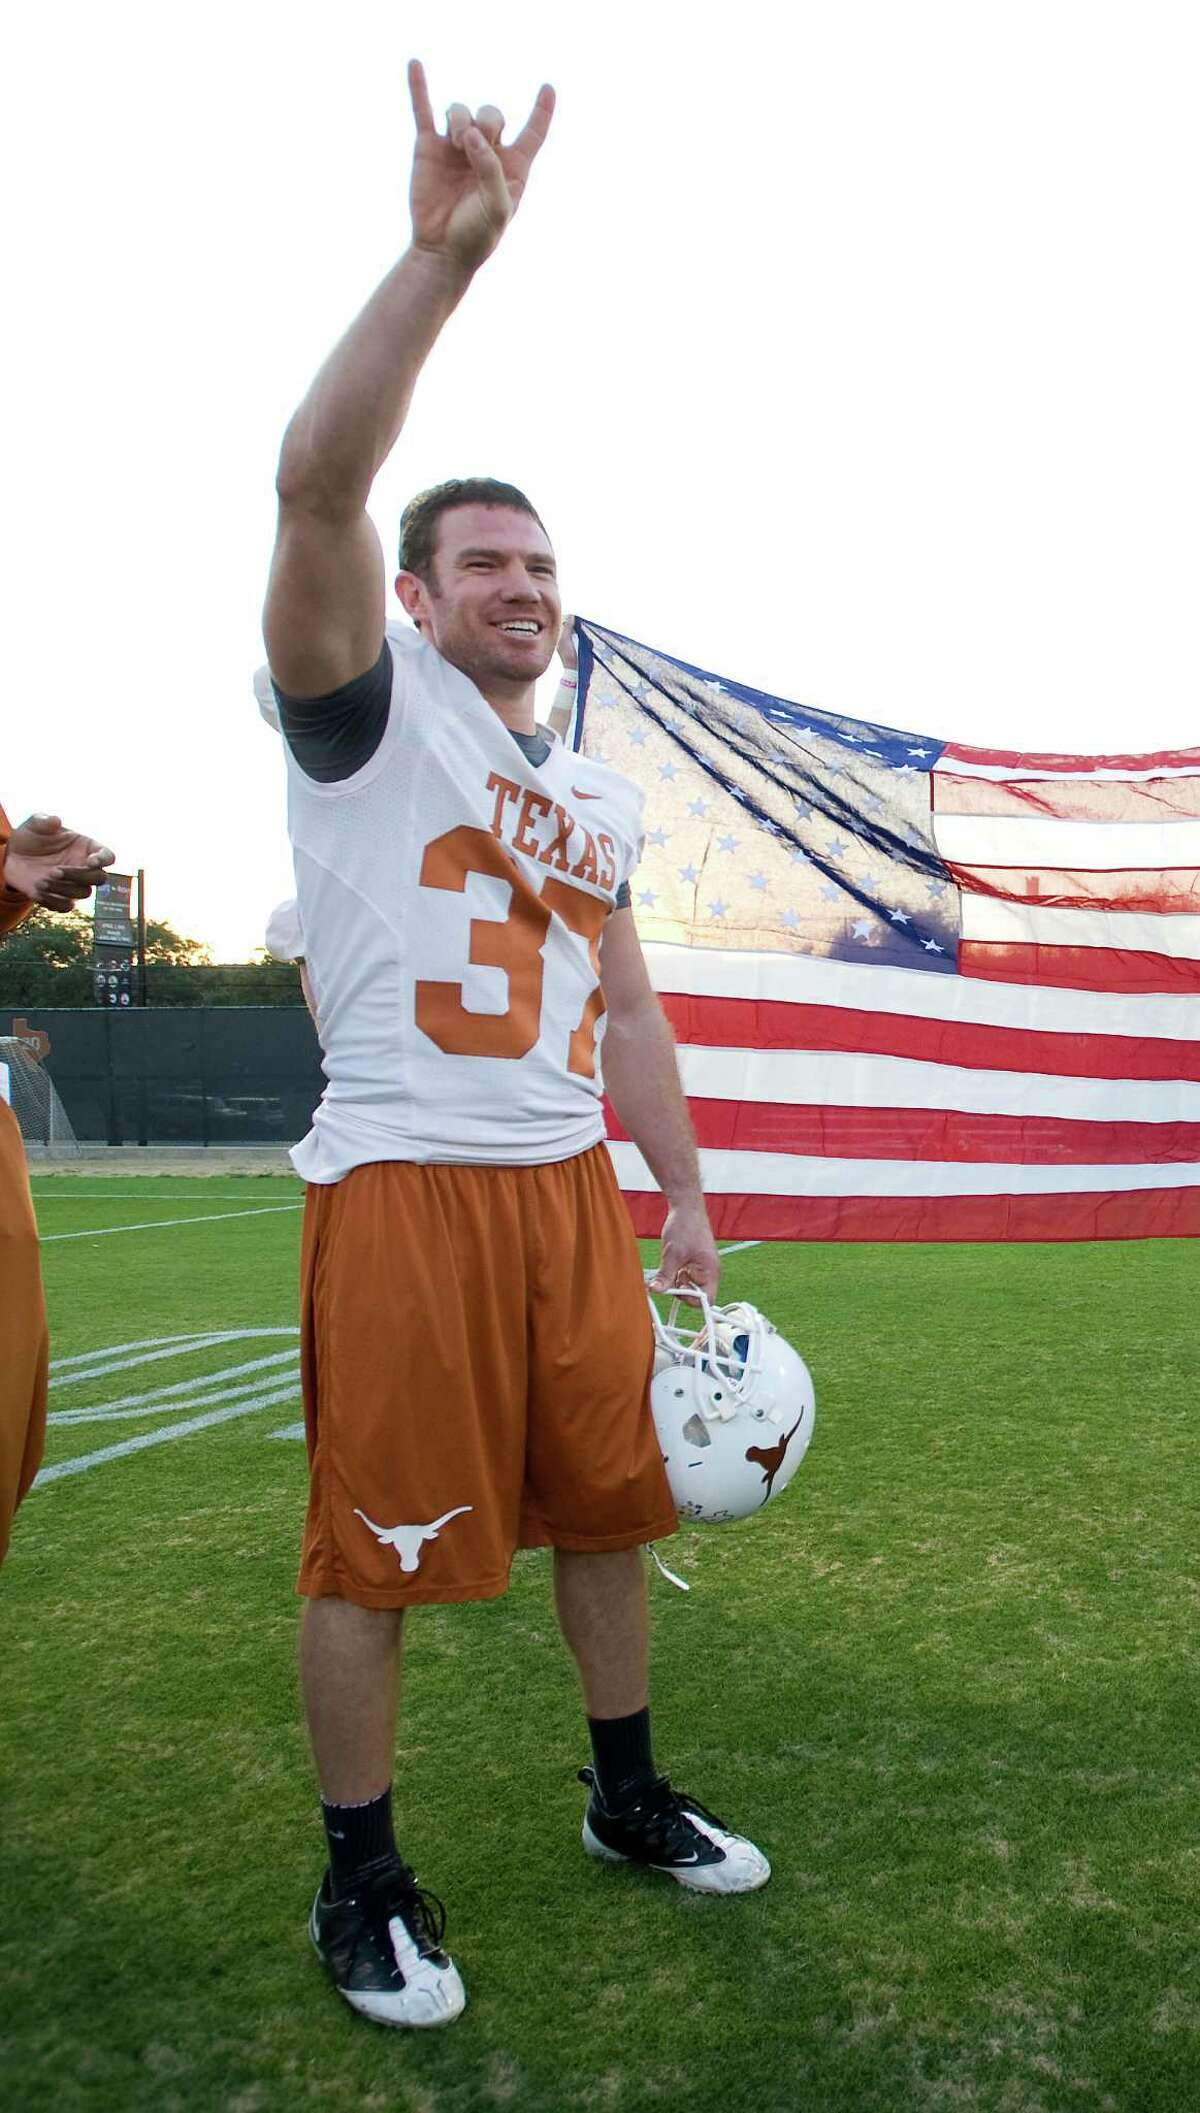 Nate Boyer's work ethic has served him well in his rise at UT.